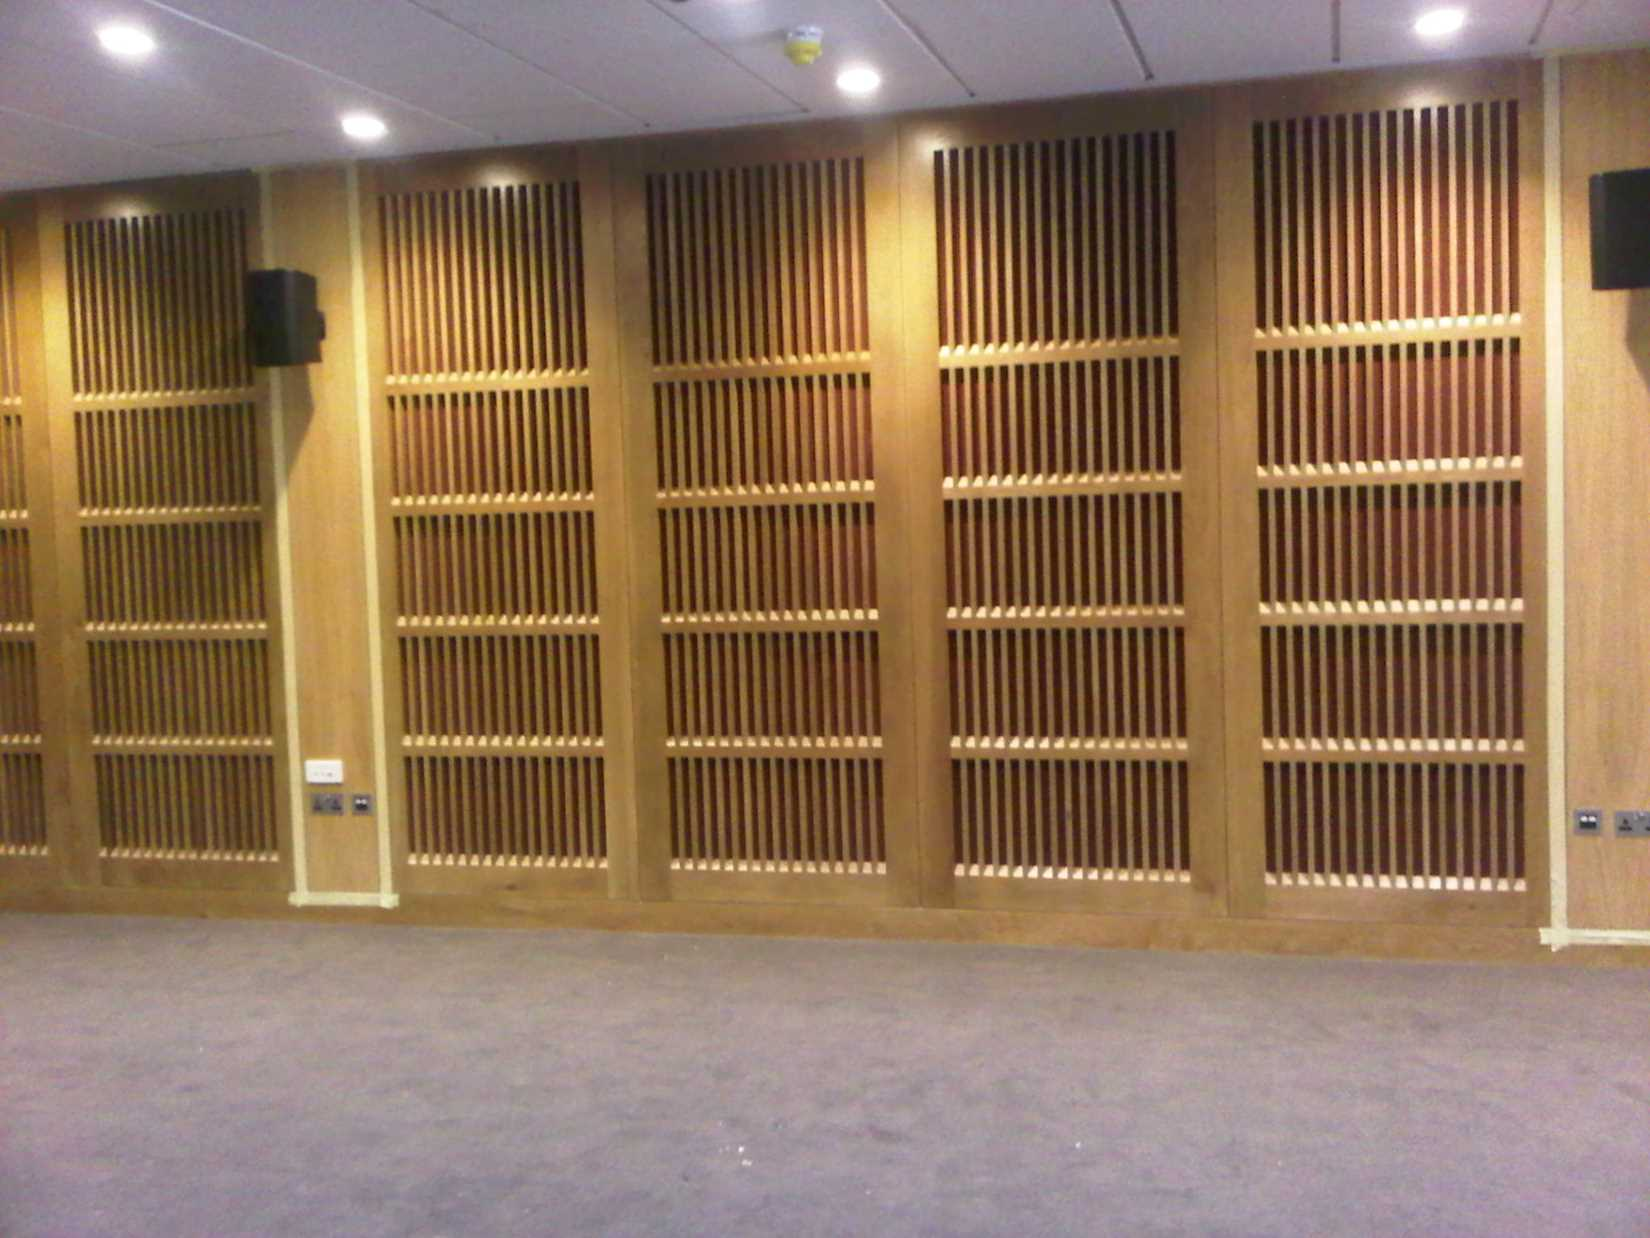 Sound absorbent timber panels